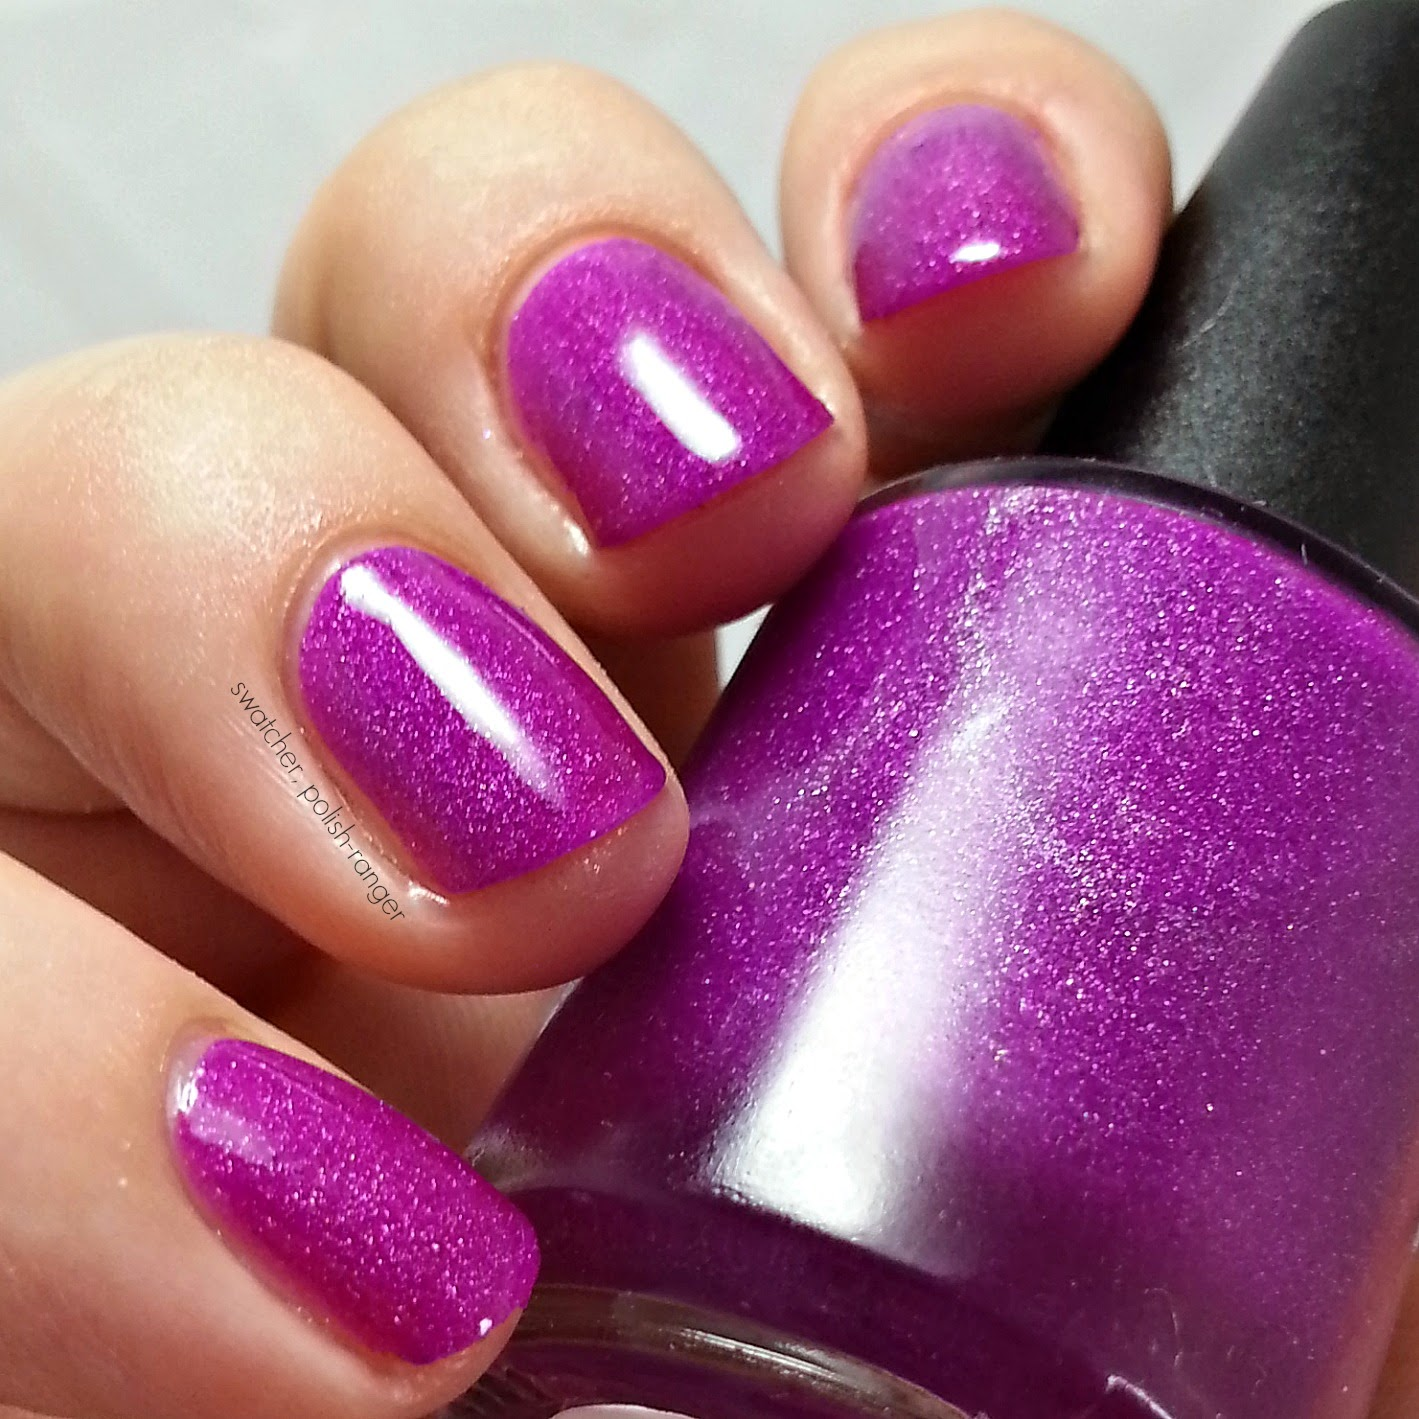 swatcher, polish-ranger | Daily Hues Nail Lacquer Tatum swatch